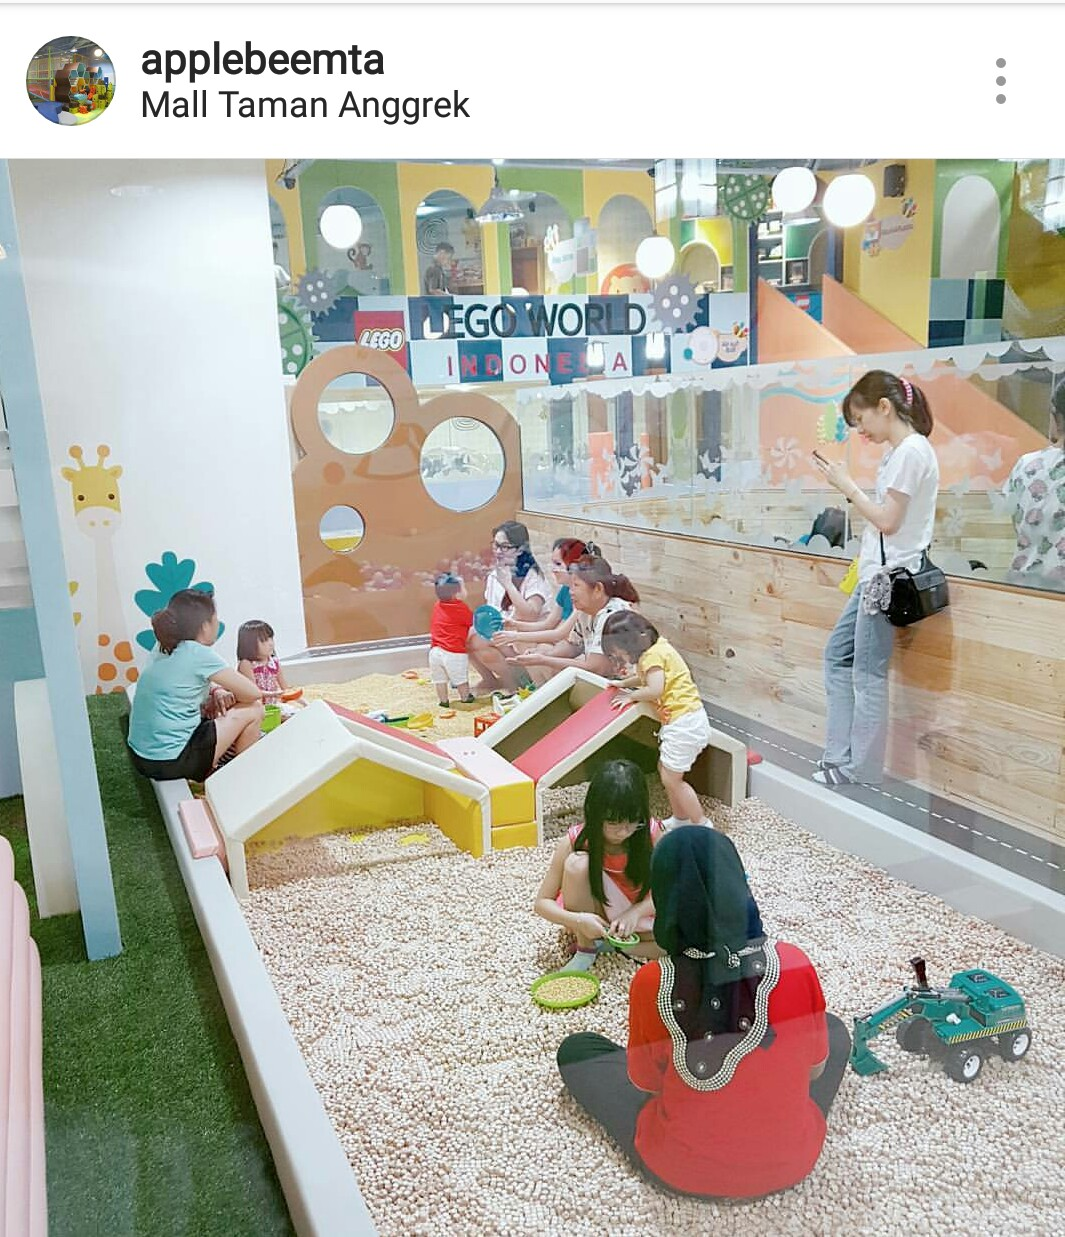 Batik Keris Di Taman Anggrek: Apple Bee Mall Taman Anggrek